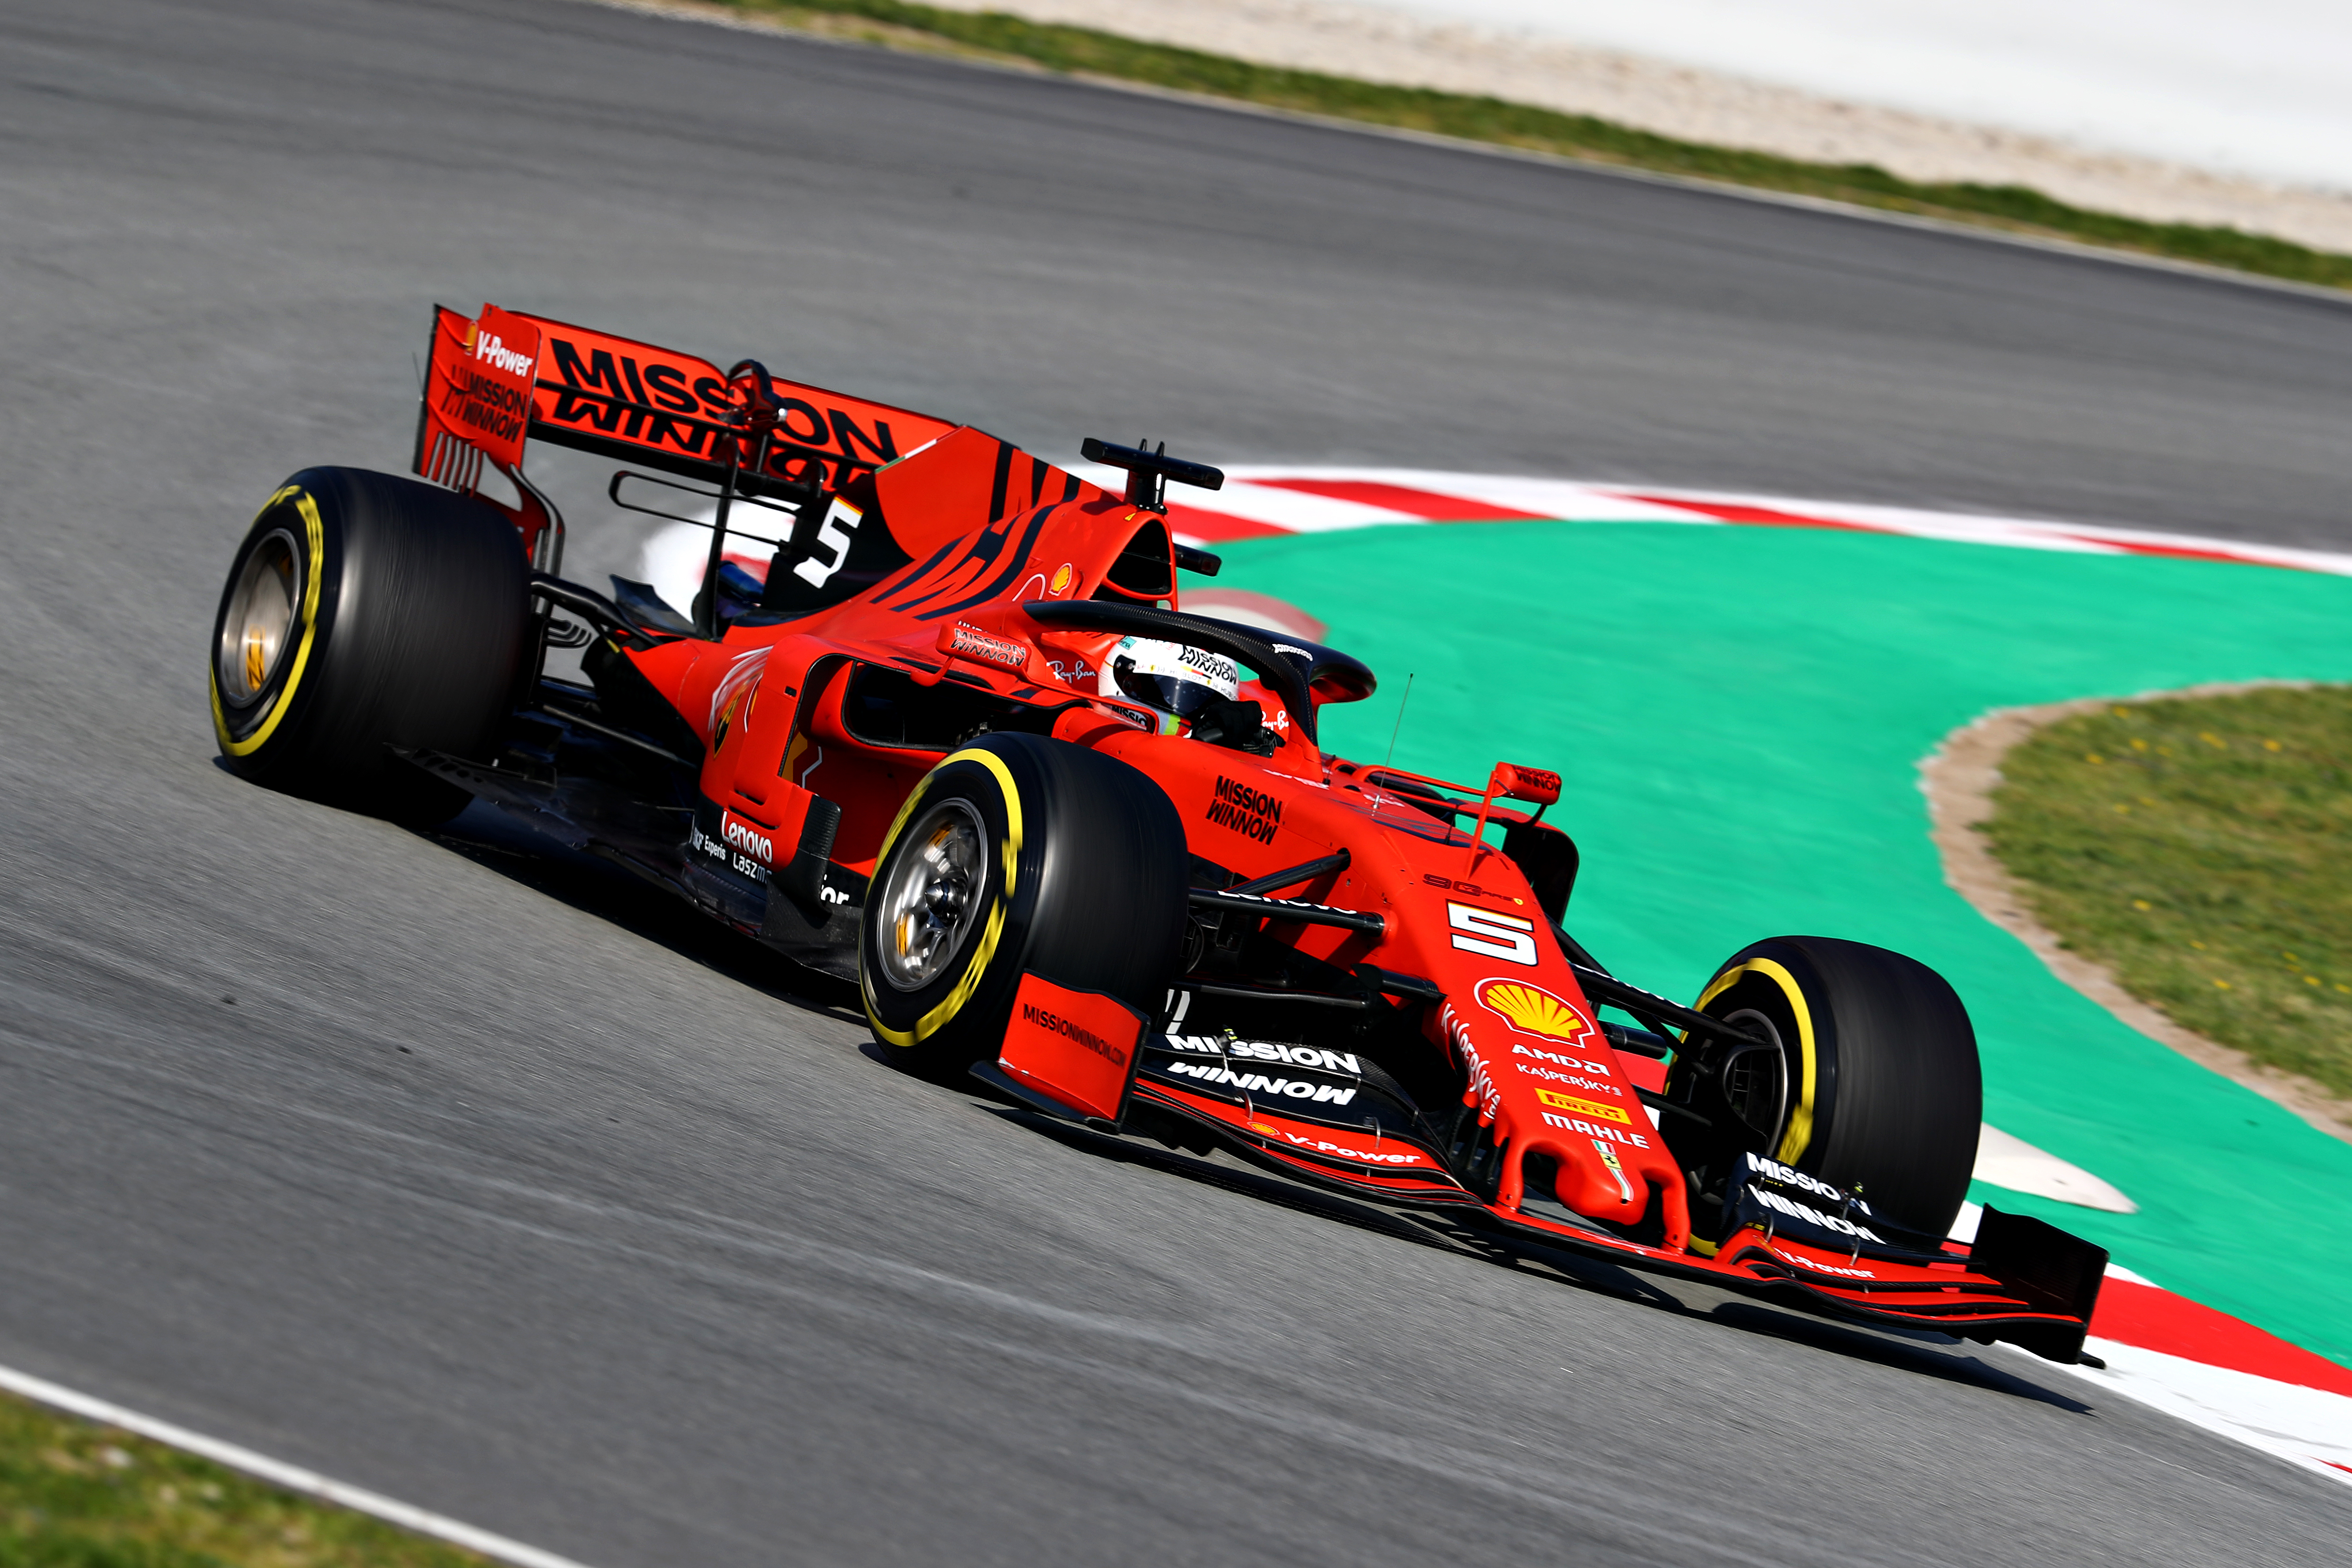 Full schedule, changes and preview for the 2019 Formula One season